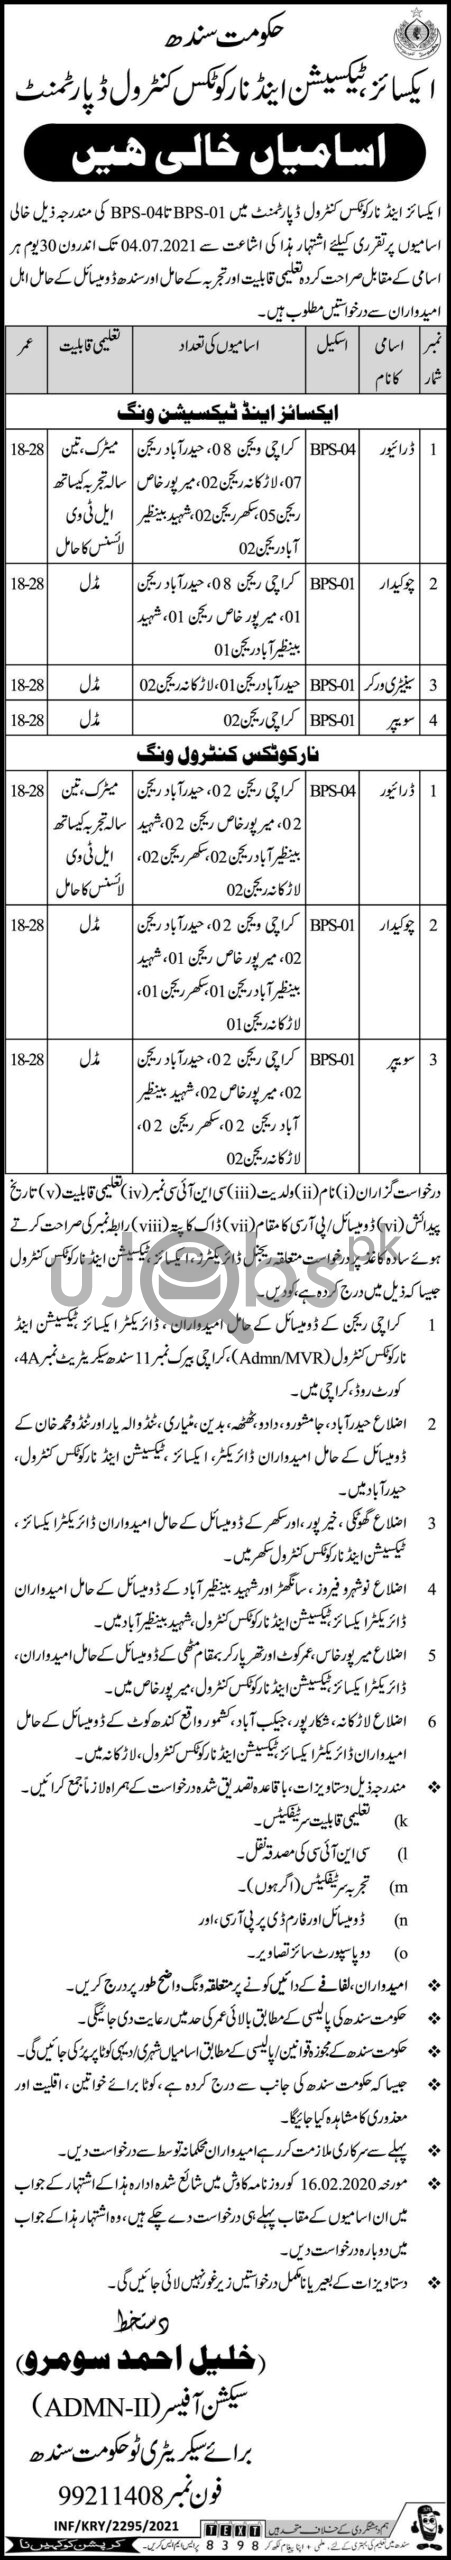 Sindh Government Excise Taxation and Narcotics Control Department Jobs in Karachi 2021